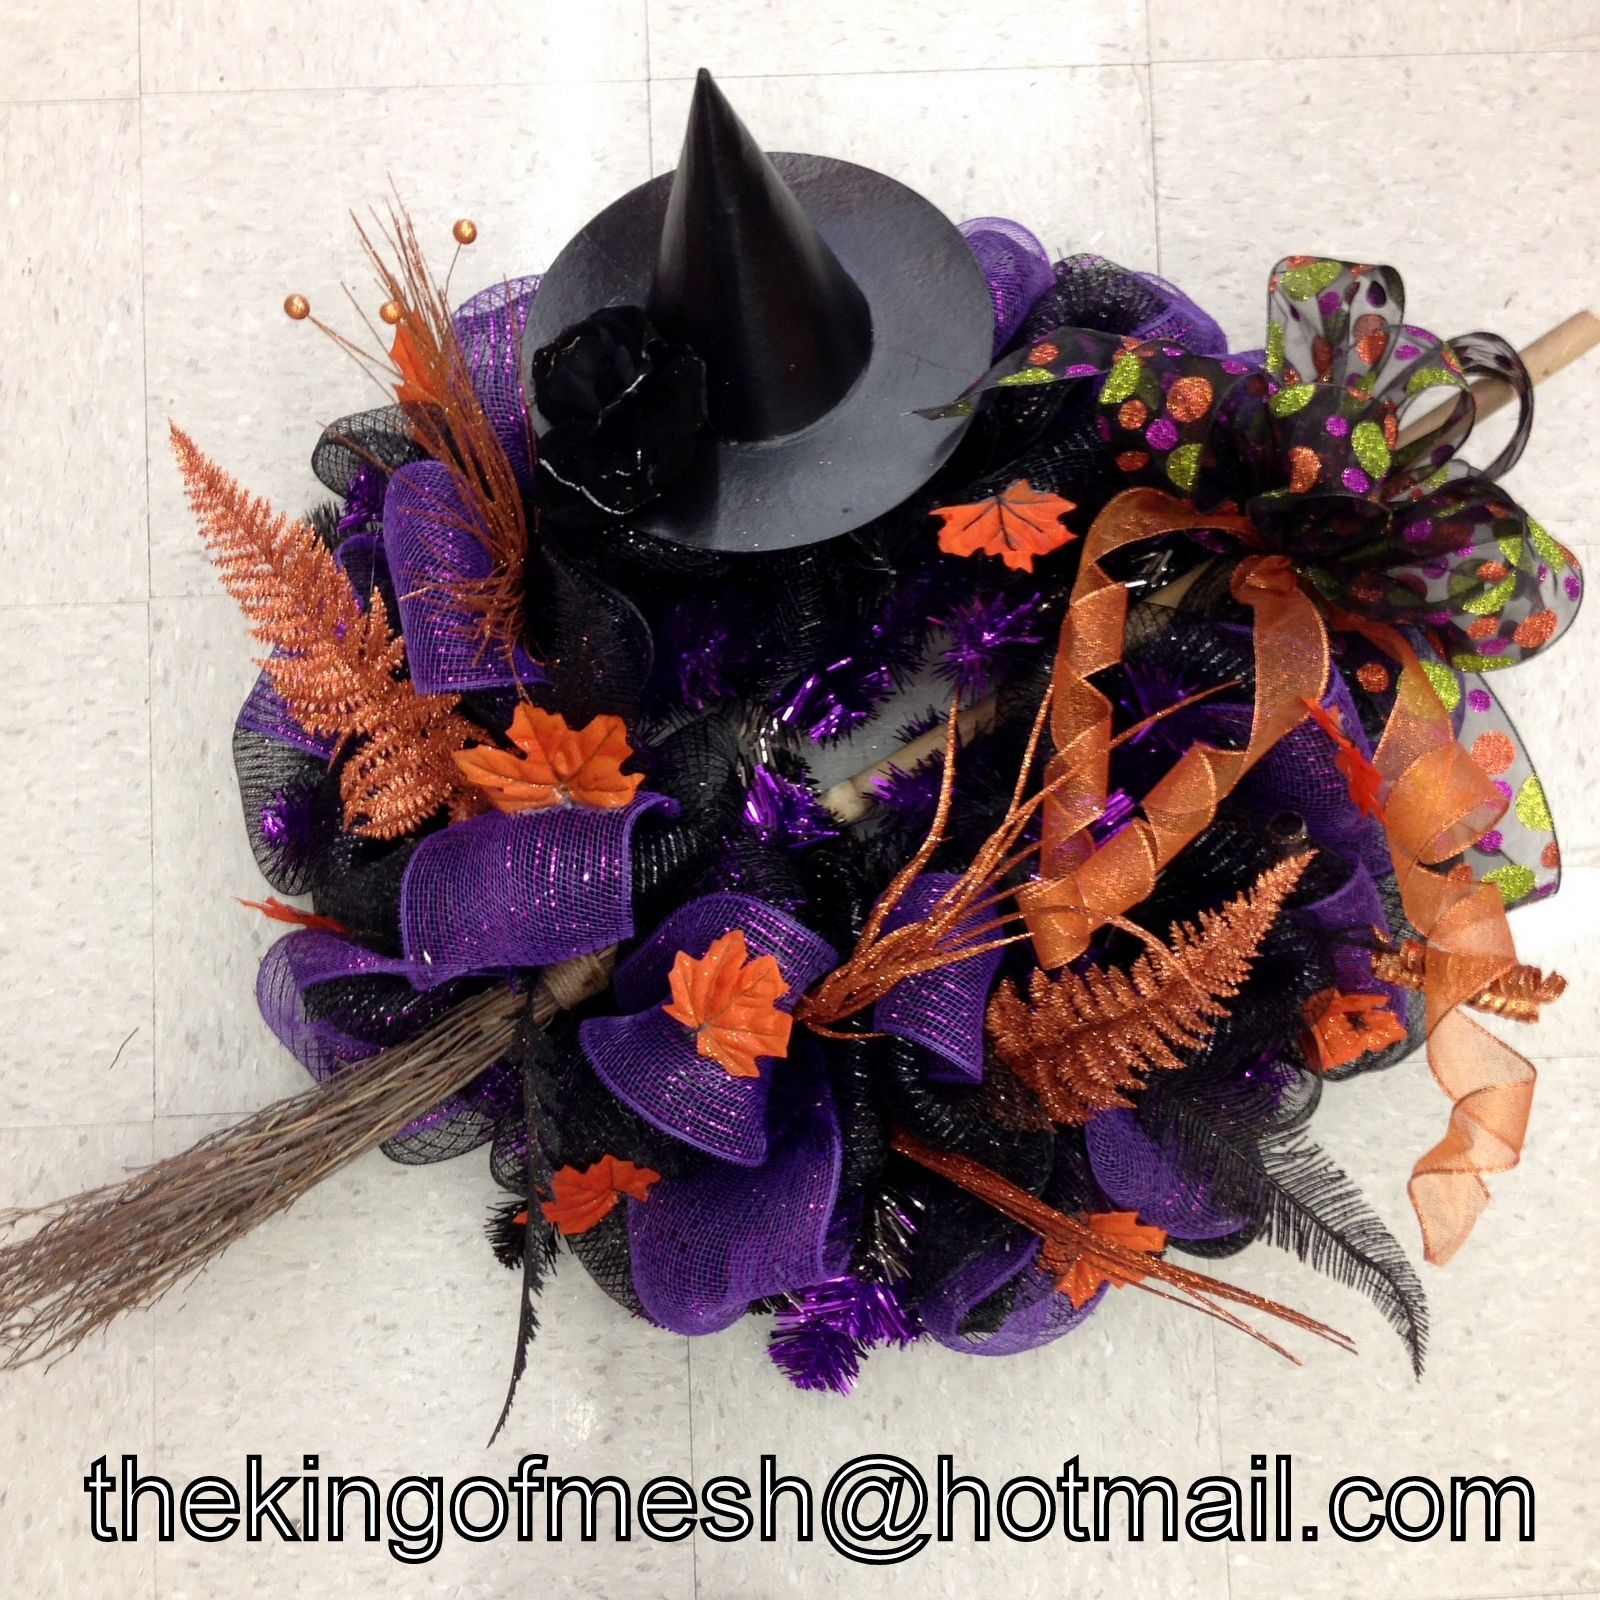 Let's get ready for #Halloween, create your own mesh wreath or order yours at: thekingofmesh@hotmail.com - Introducing my newest #meshwreath from latest #witch collection. I got all my supplies at @MichaelsStores #craftssupplies #decomesh #custom #mesh #michaelsstores @thekingofmesh #homedecor #polydecomesh #hat #broom #fun #colourful